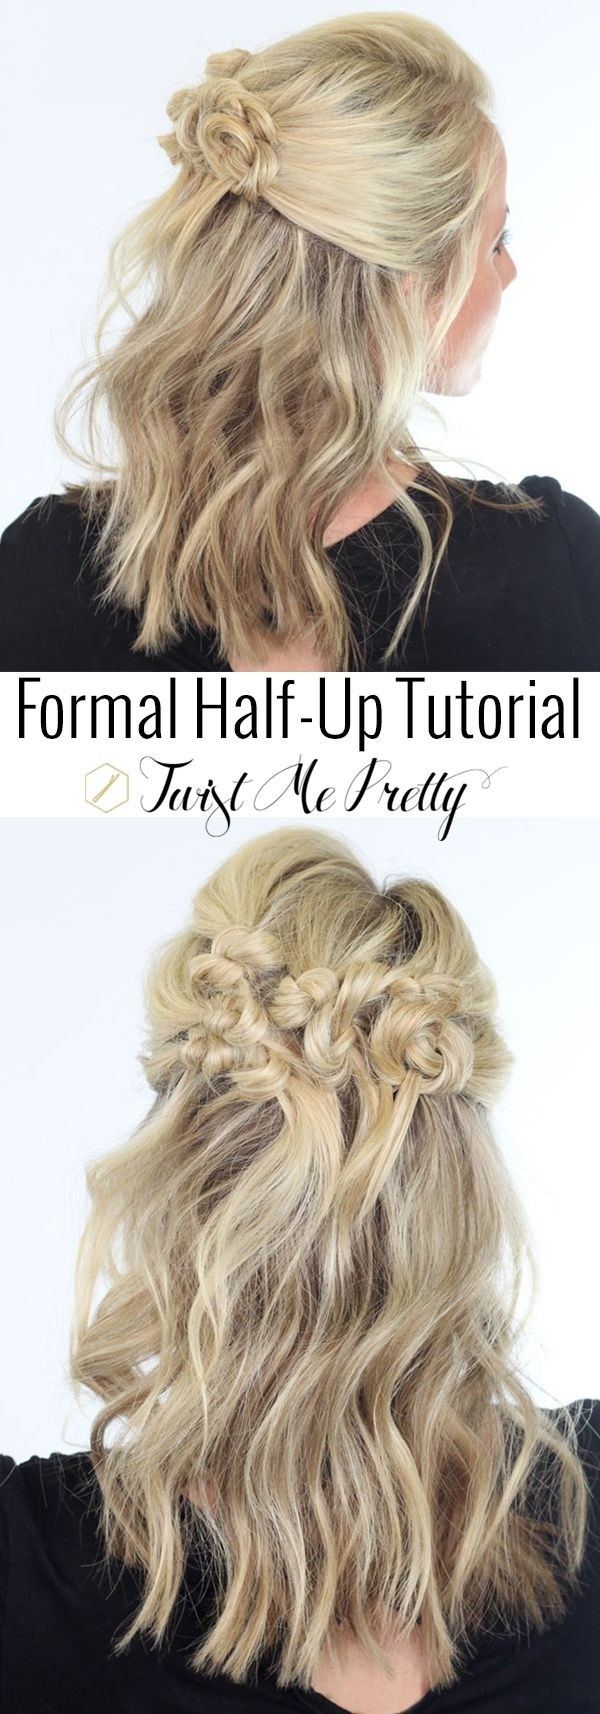 Twisted Bun Half Updo for Mid-Length Hair